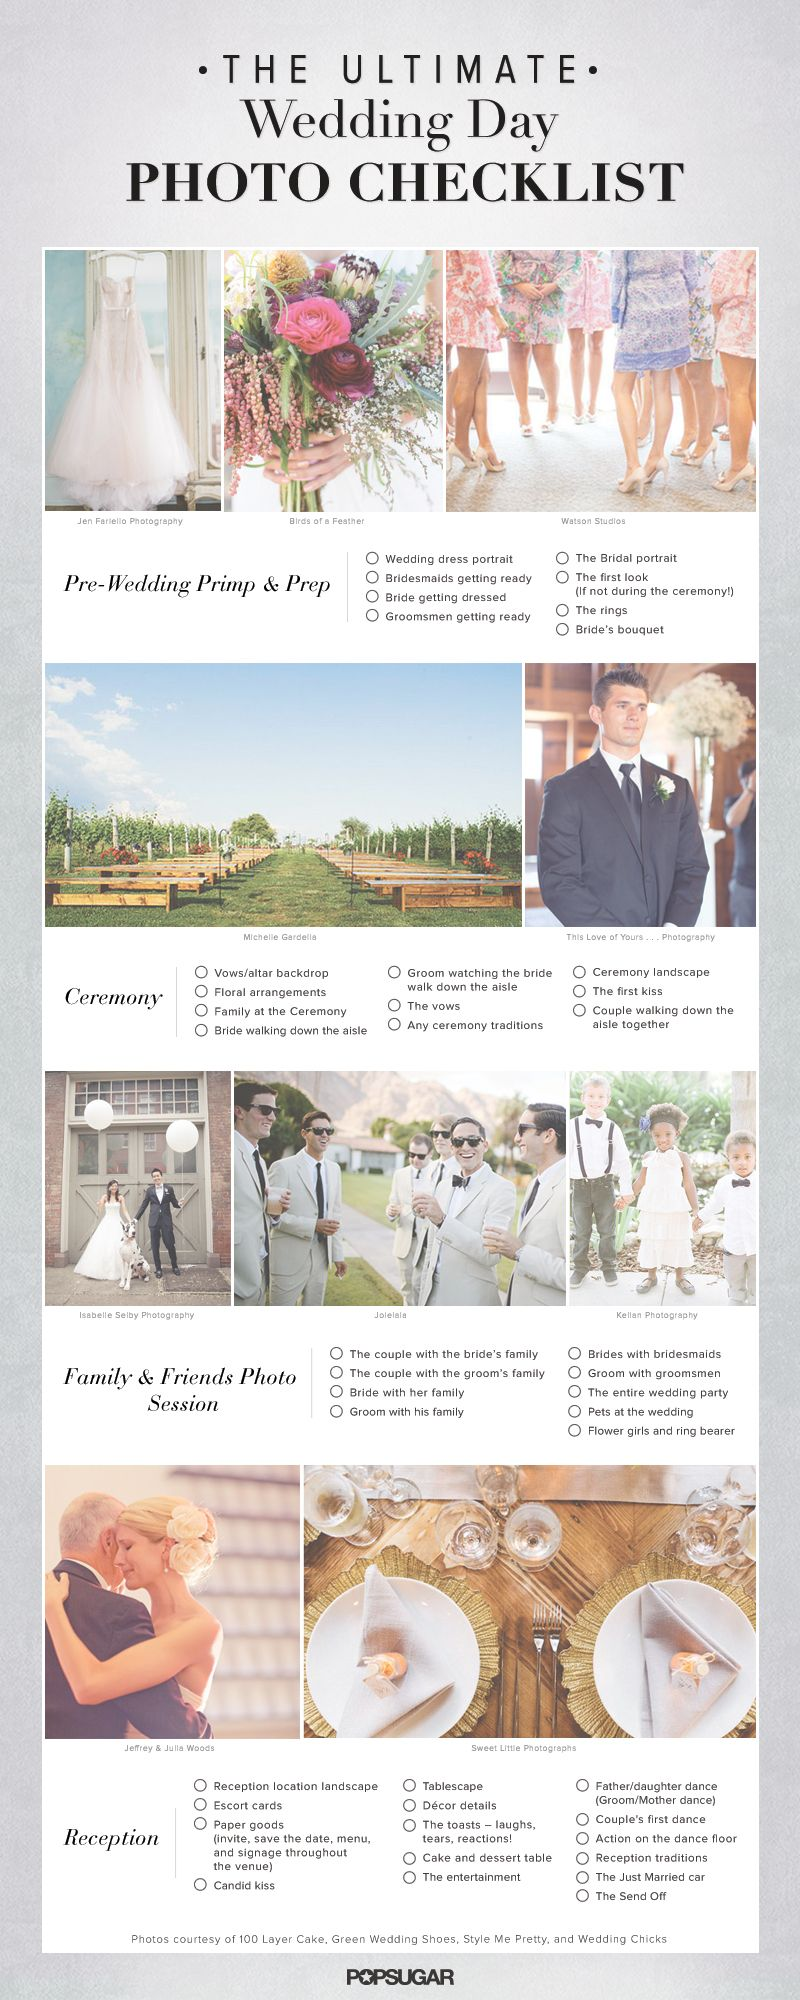 The Wedding Day Photo Checklist Pin Now Save For Later